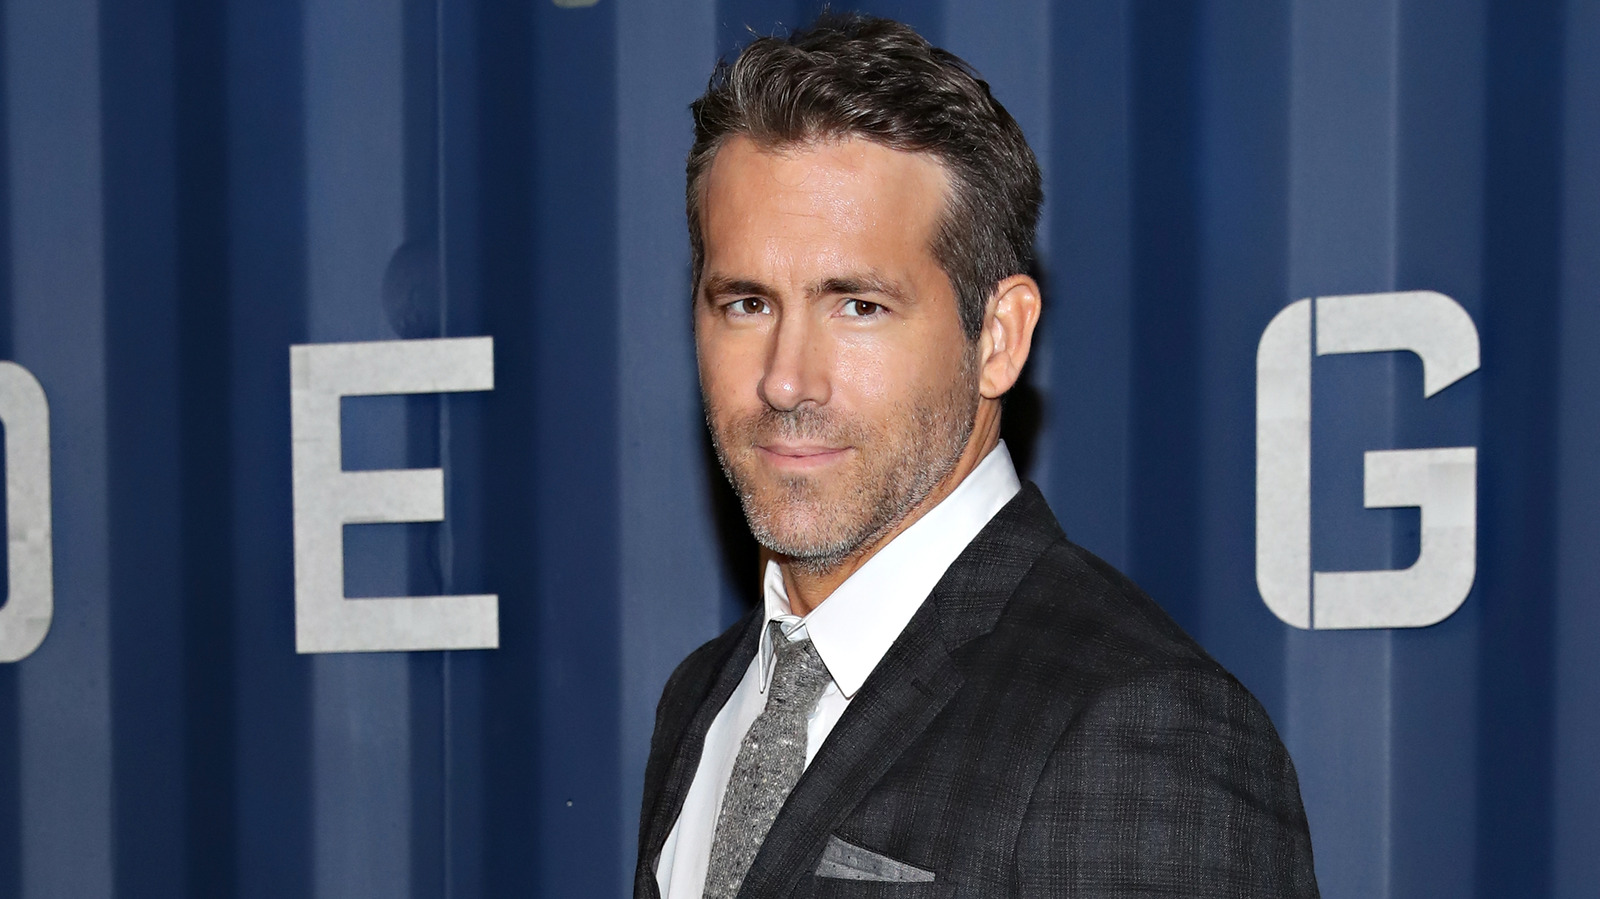 People love this long-lost Ryan Reynolds Netflix movie